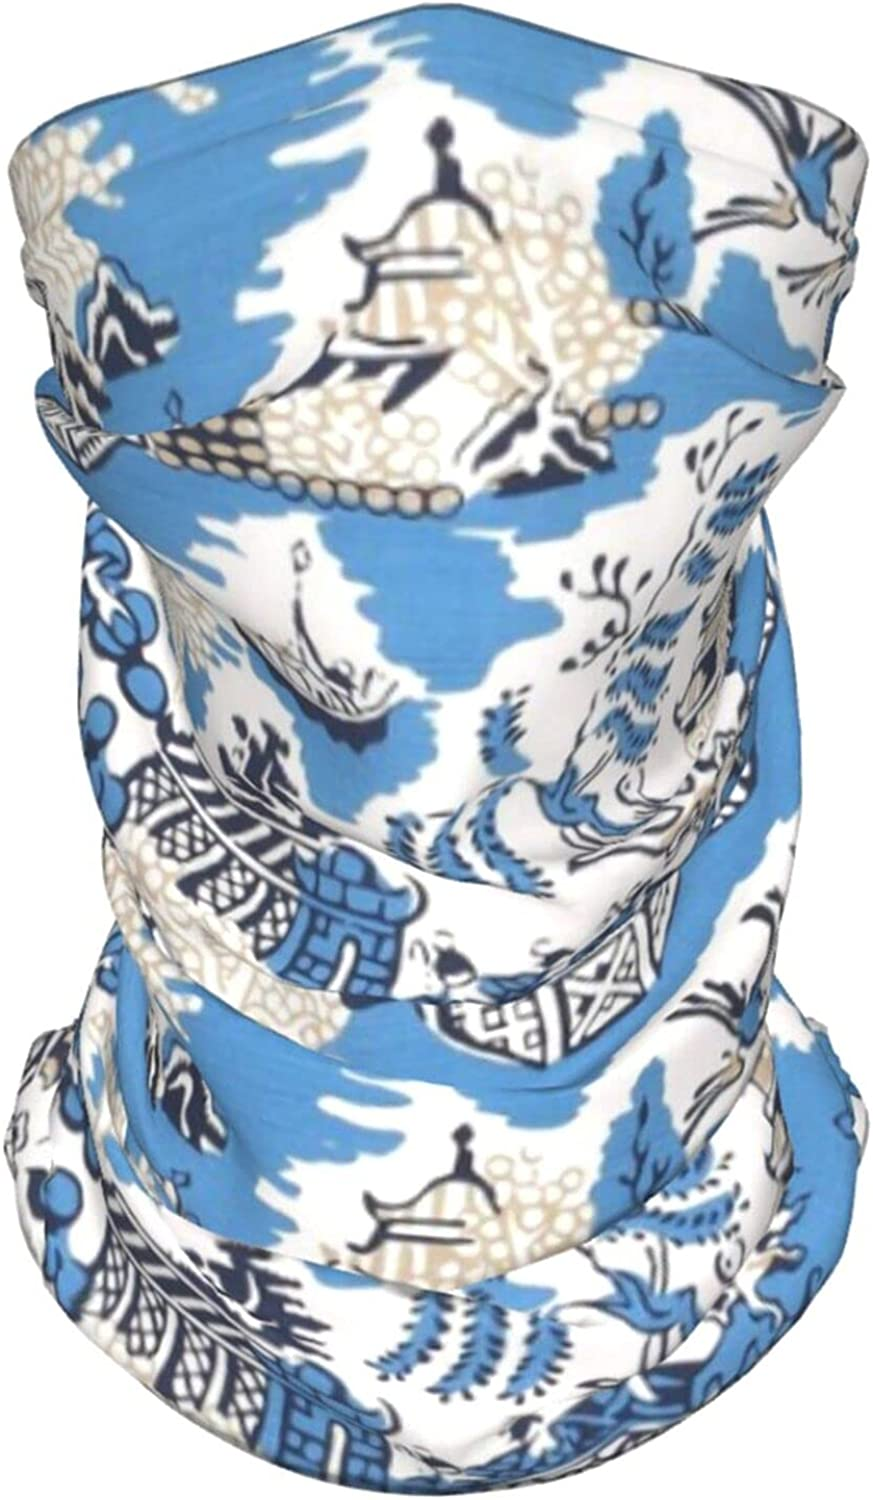 Blue Mountains Neck Gaiter Multipurpose Headwear Ice Silk Mask Scarf Summer Cool Breathable Outdoor Sport 4 Pcs